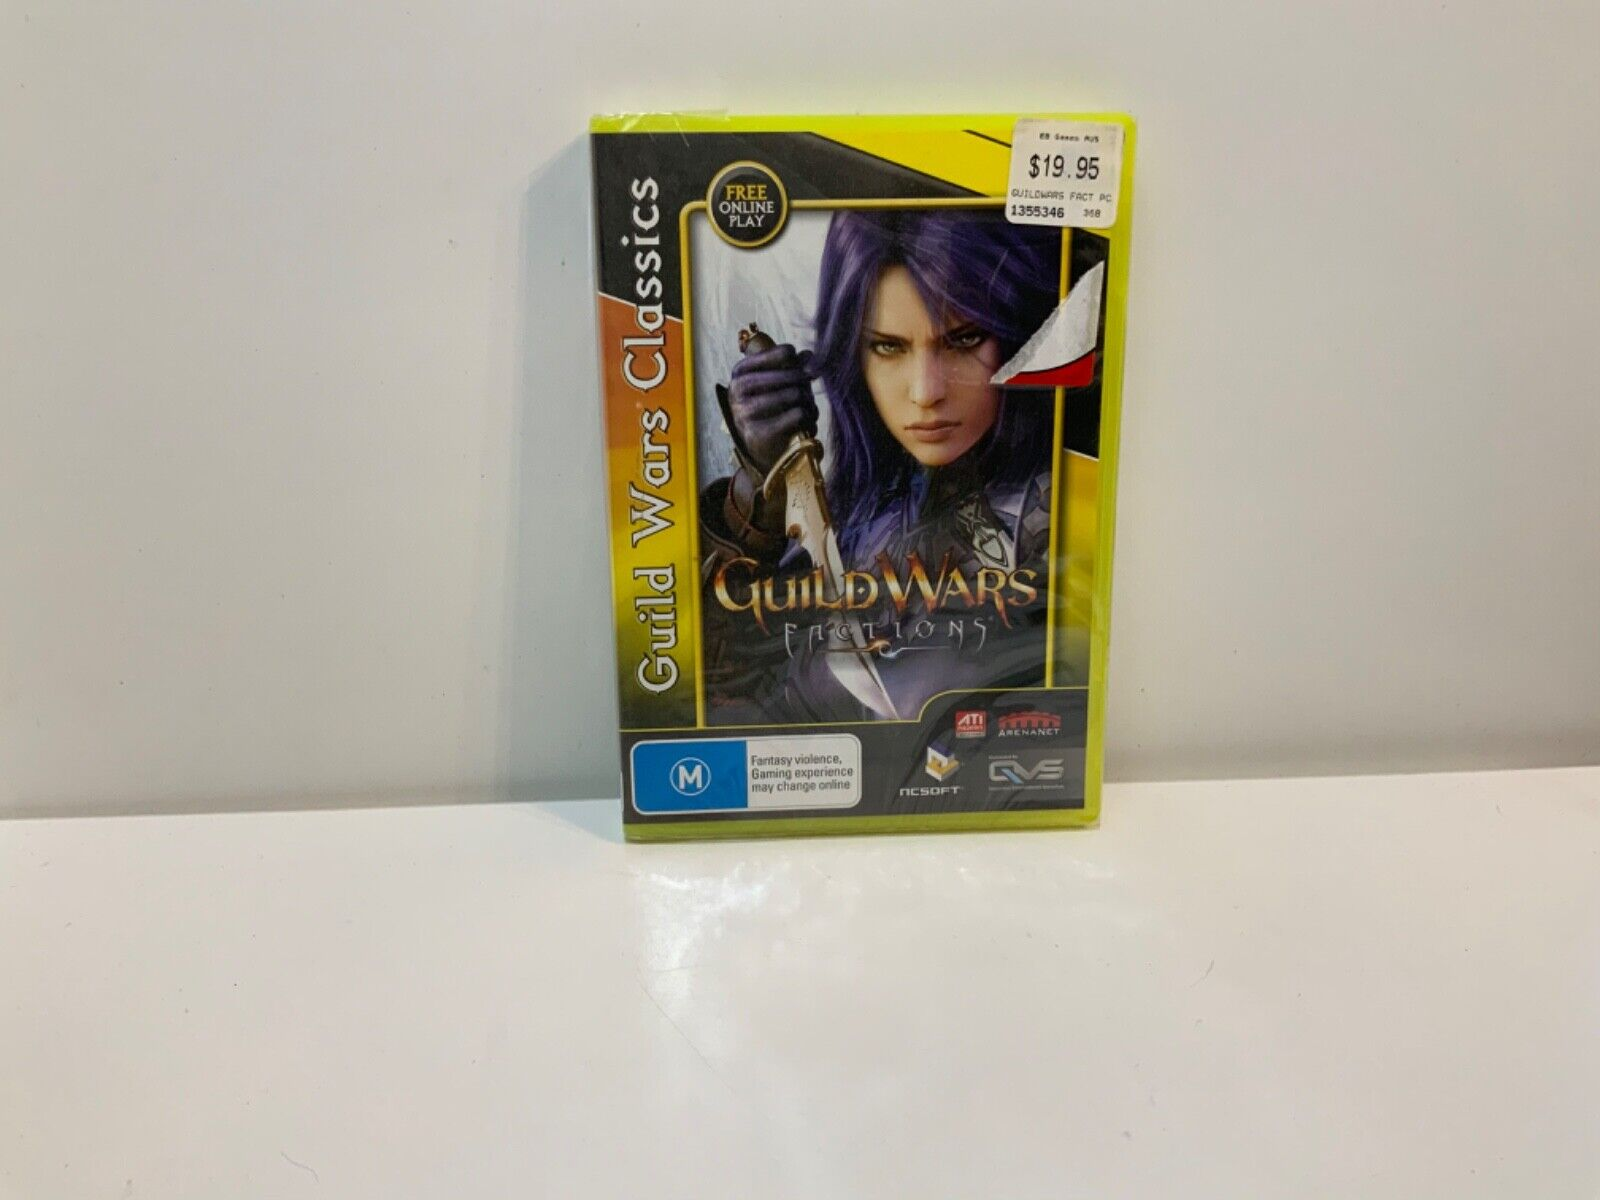 game computer - Guild Wars Factions - PC DVD CD Computer Game - Free Postage!